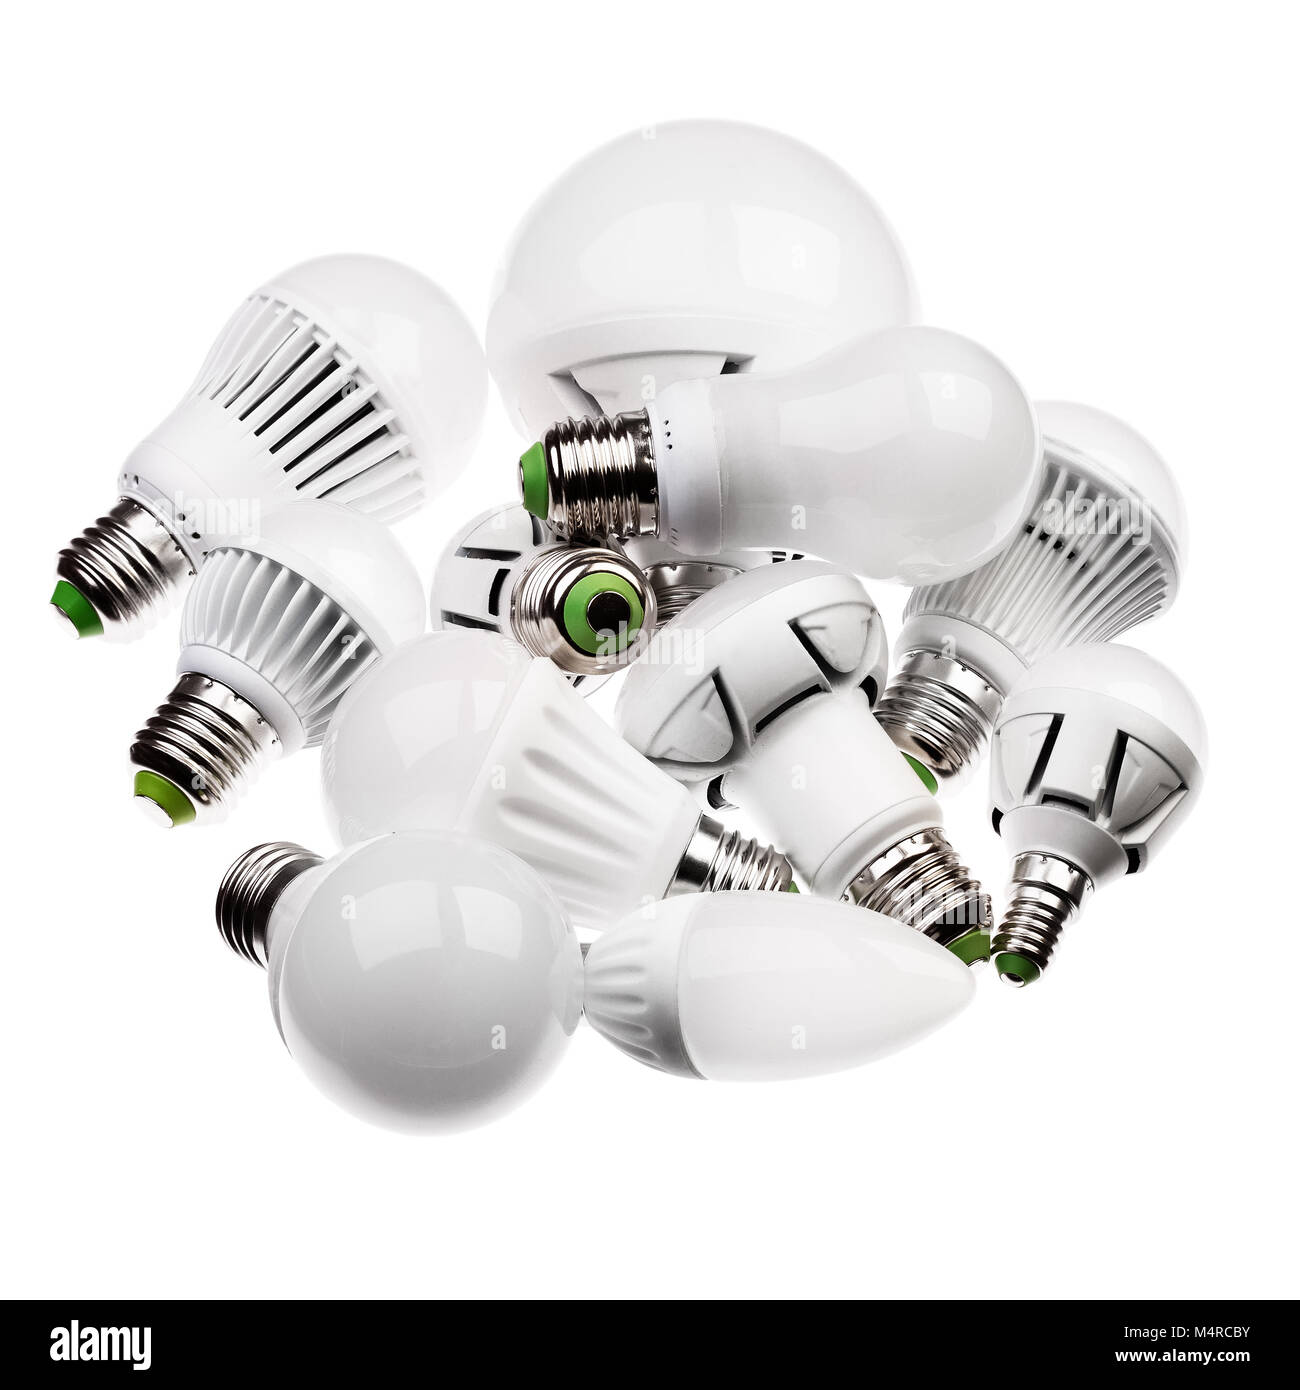 LED lamps GU10 and E27 with a different sockets isolated on white - Stock Image